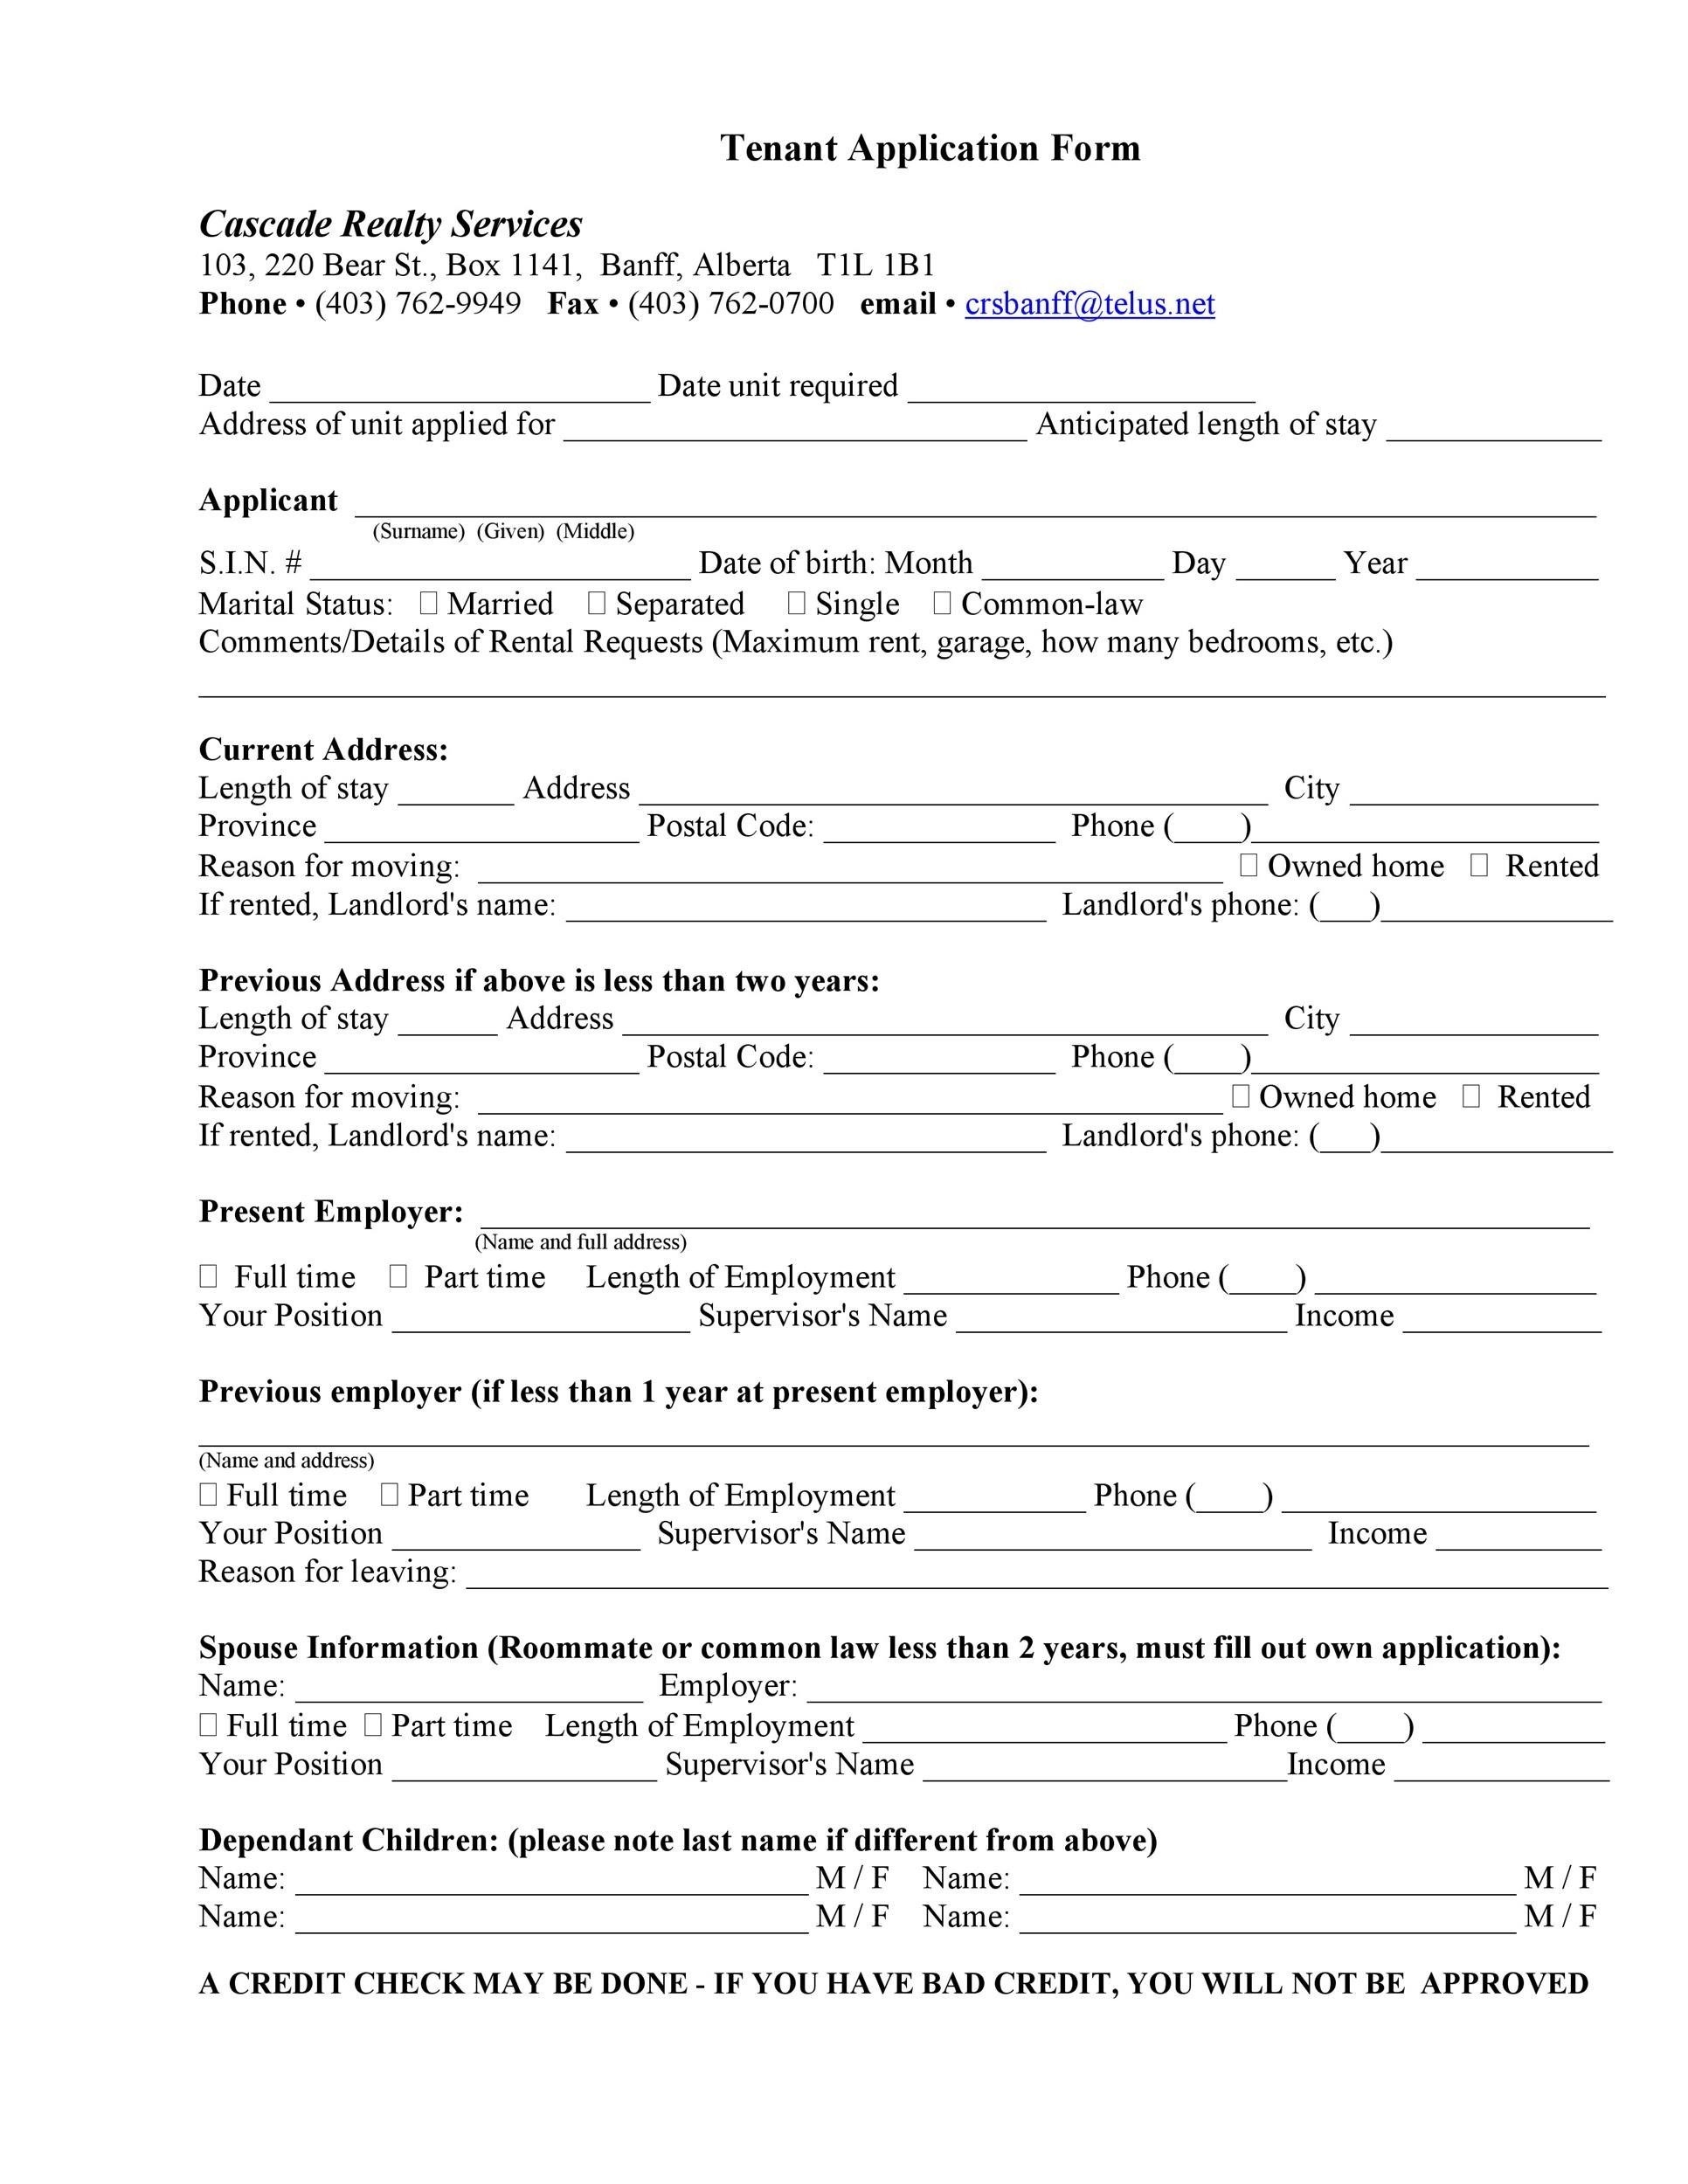 Sample Lease Agreement Form Sample MissouriCommercialLease – Sample Apartment Lease Agreement Template